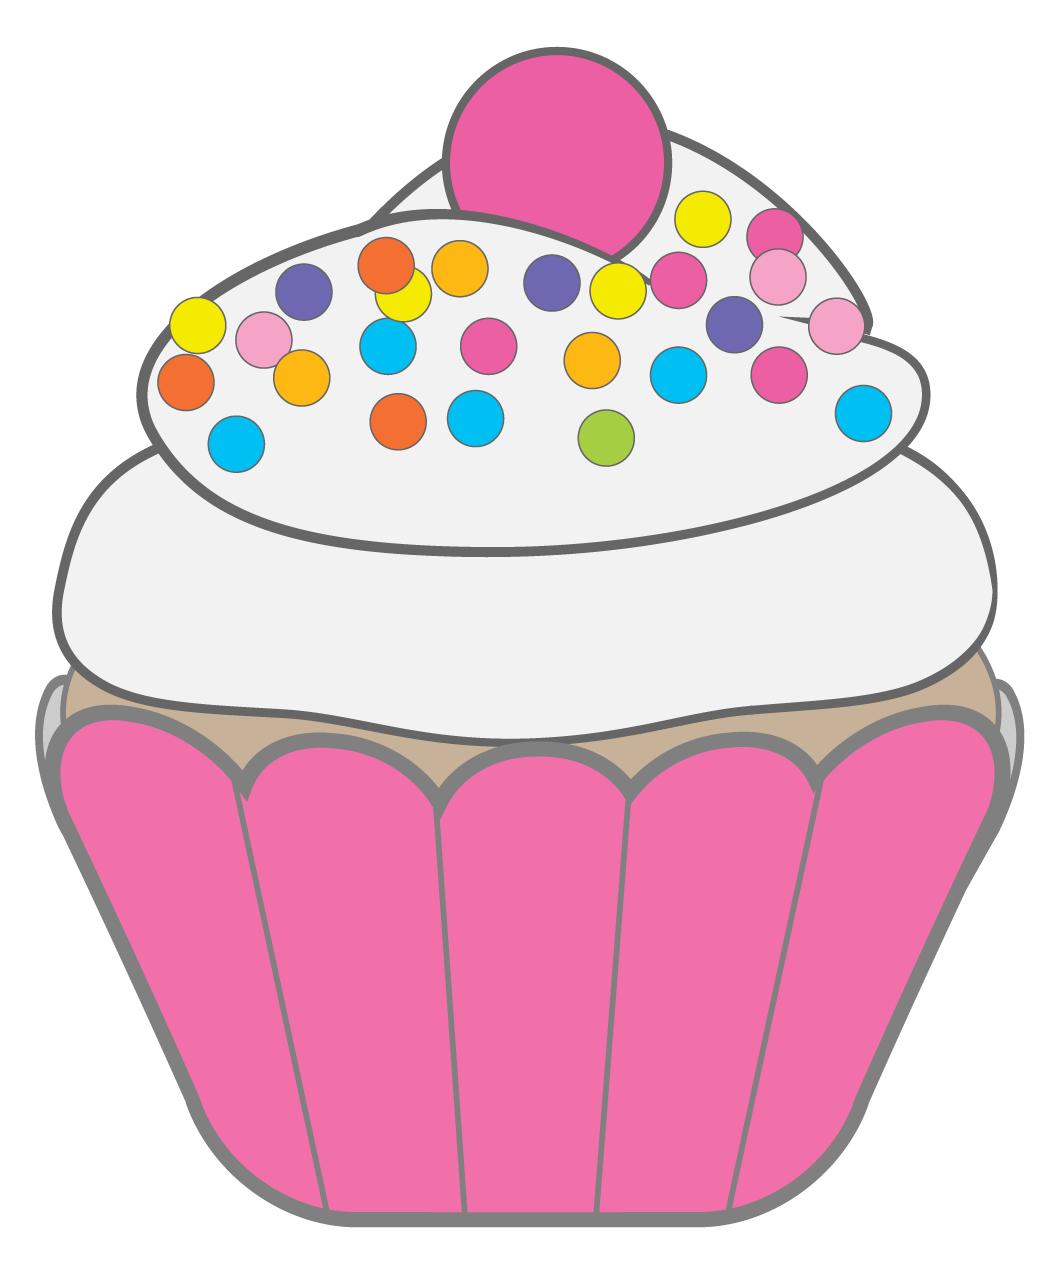 cupcake clipart free download clipart panda free clipart images rh clipartpanda com clipart of birthday cupcakes clipart of cupcakes black and white